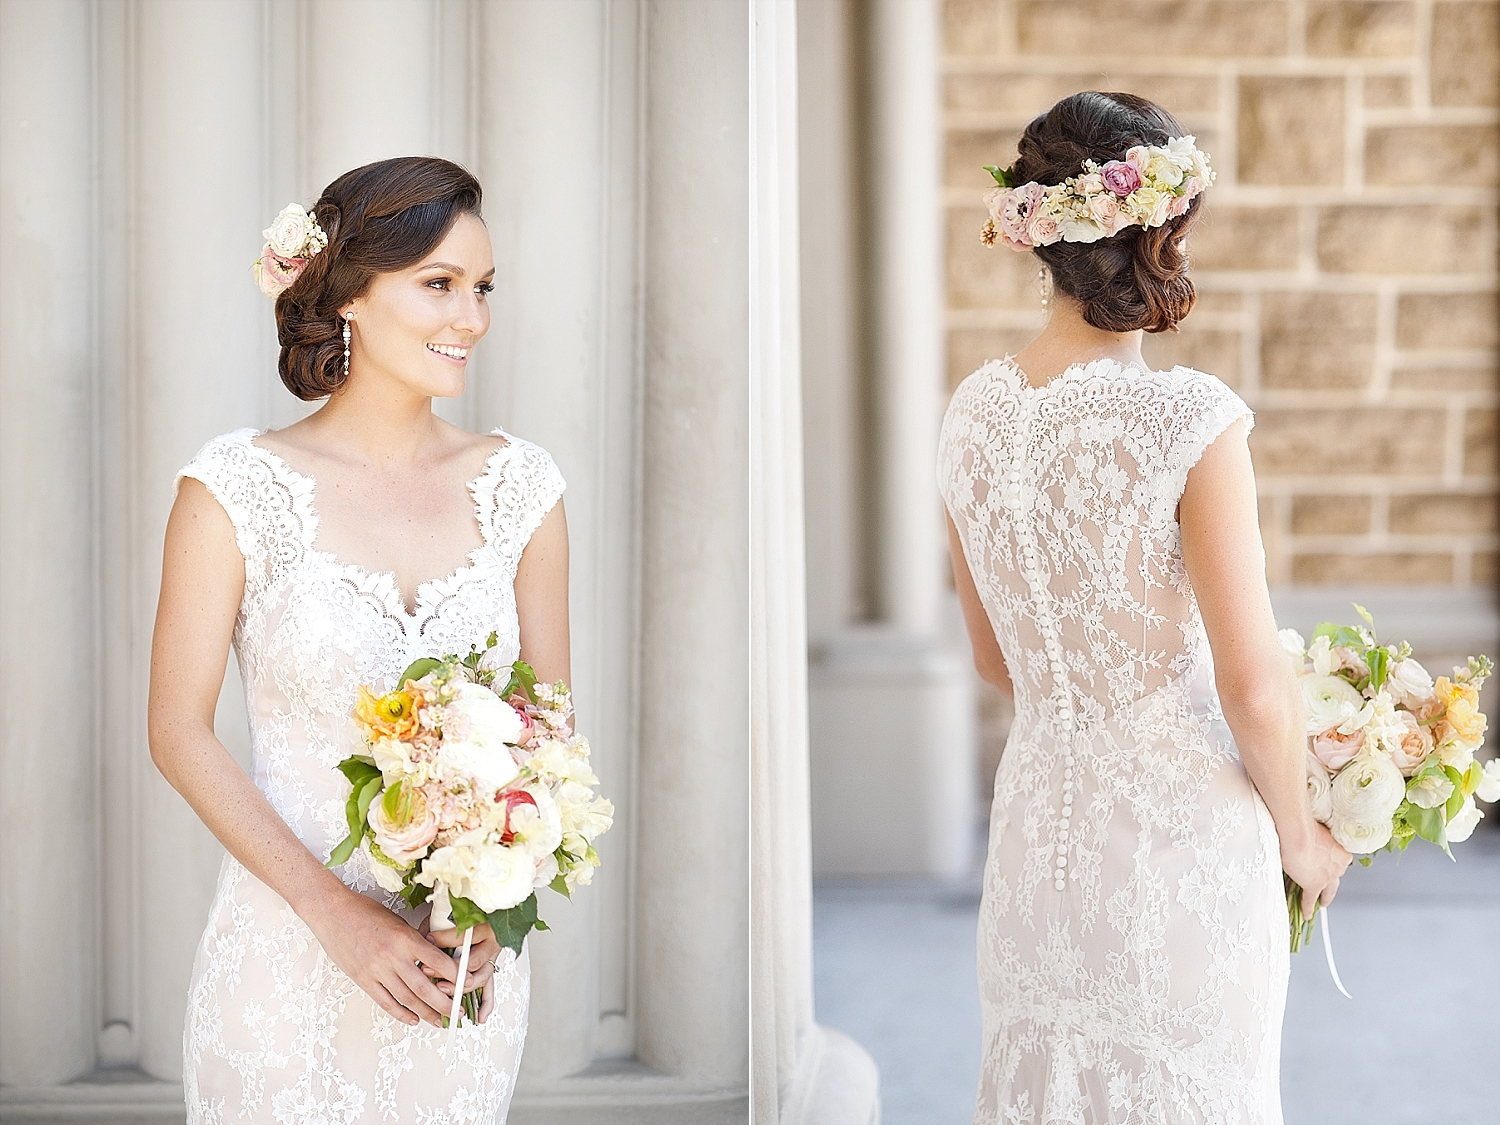 30 bride with lace dress and flower crown perth wedding 036.jpg